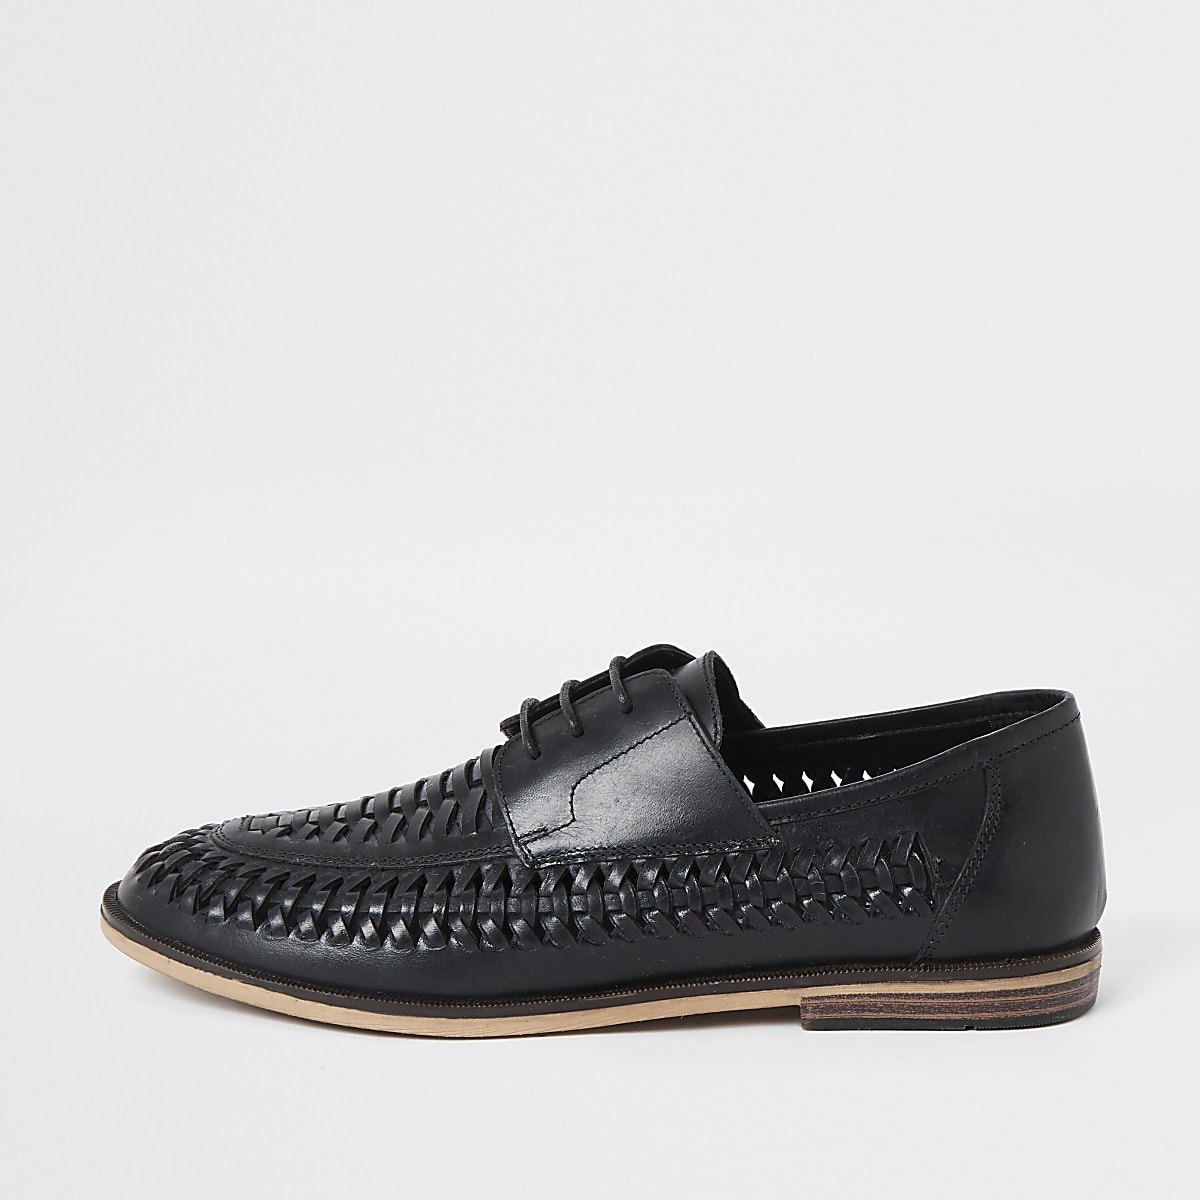 Black leather woven lace-up derby shoes